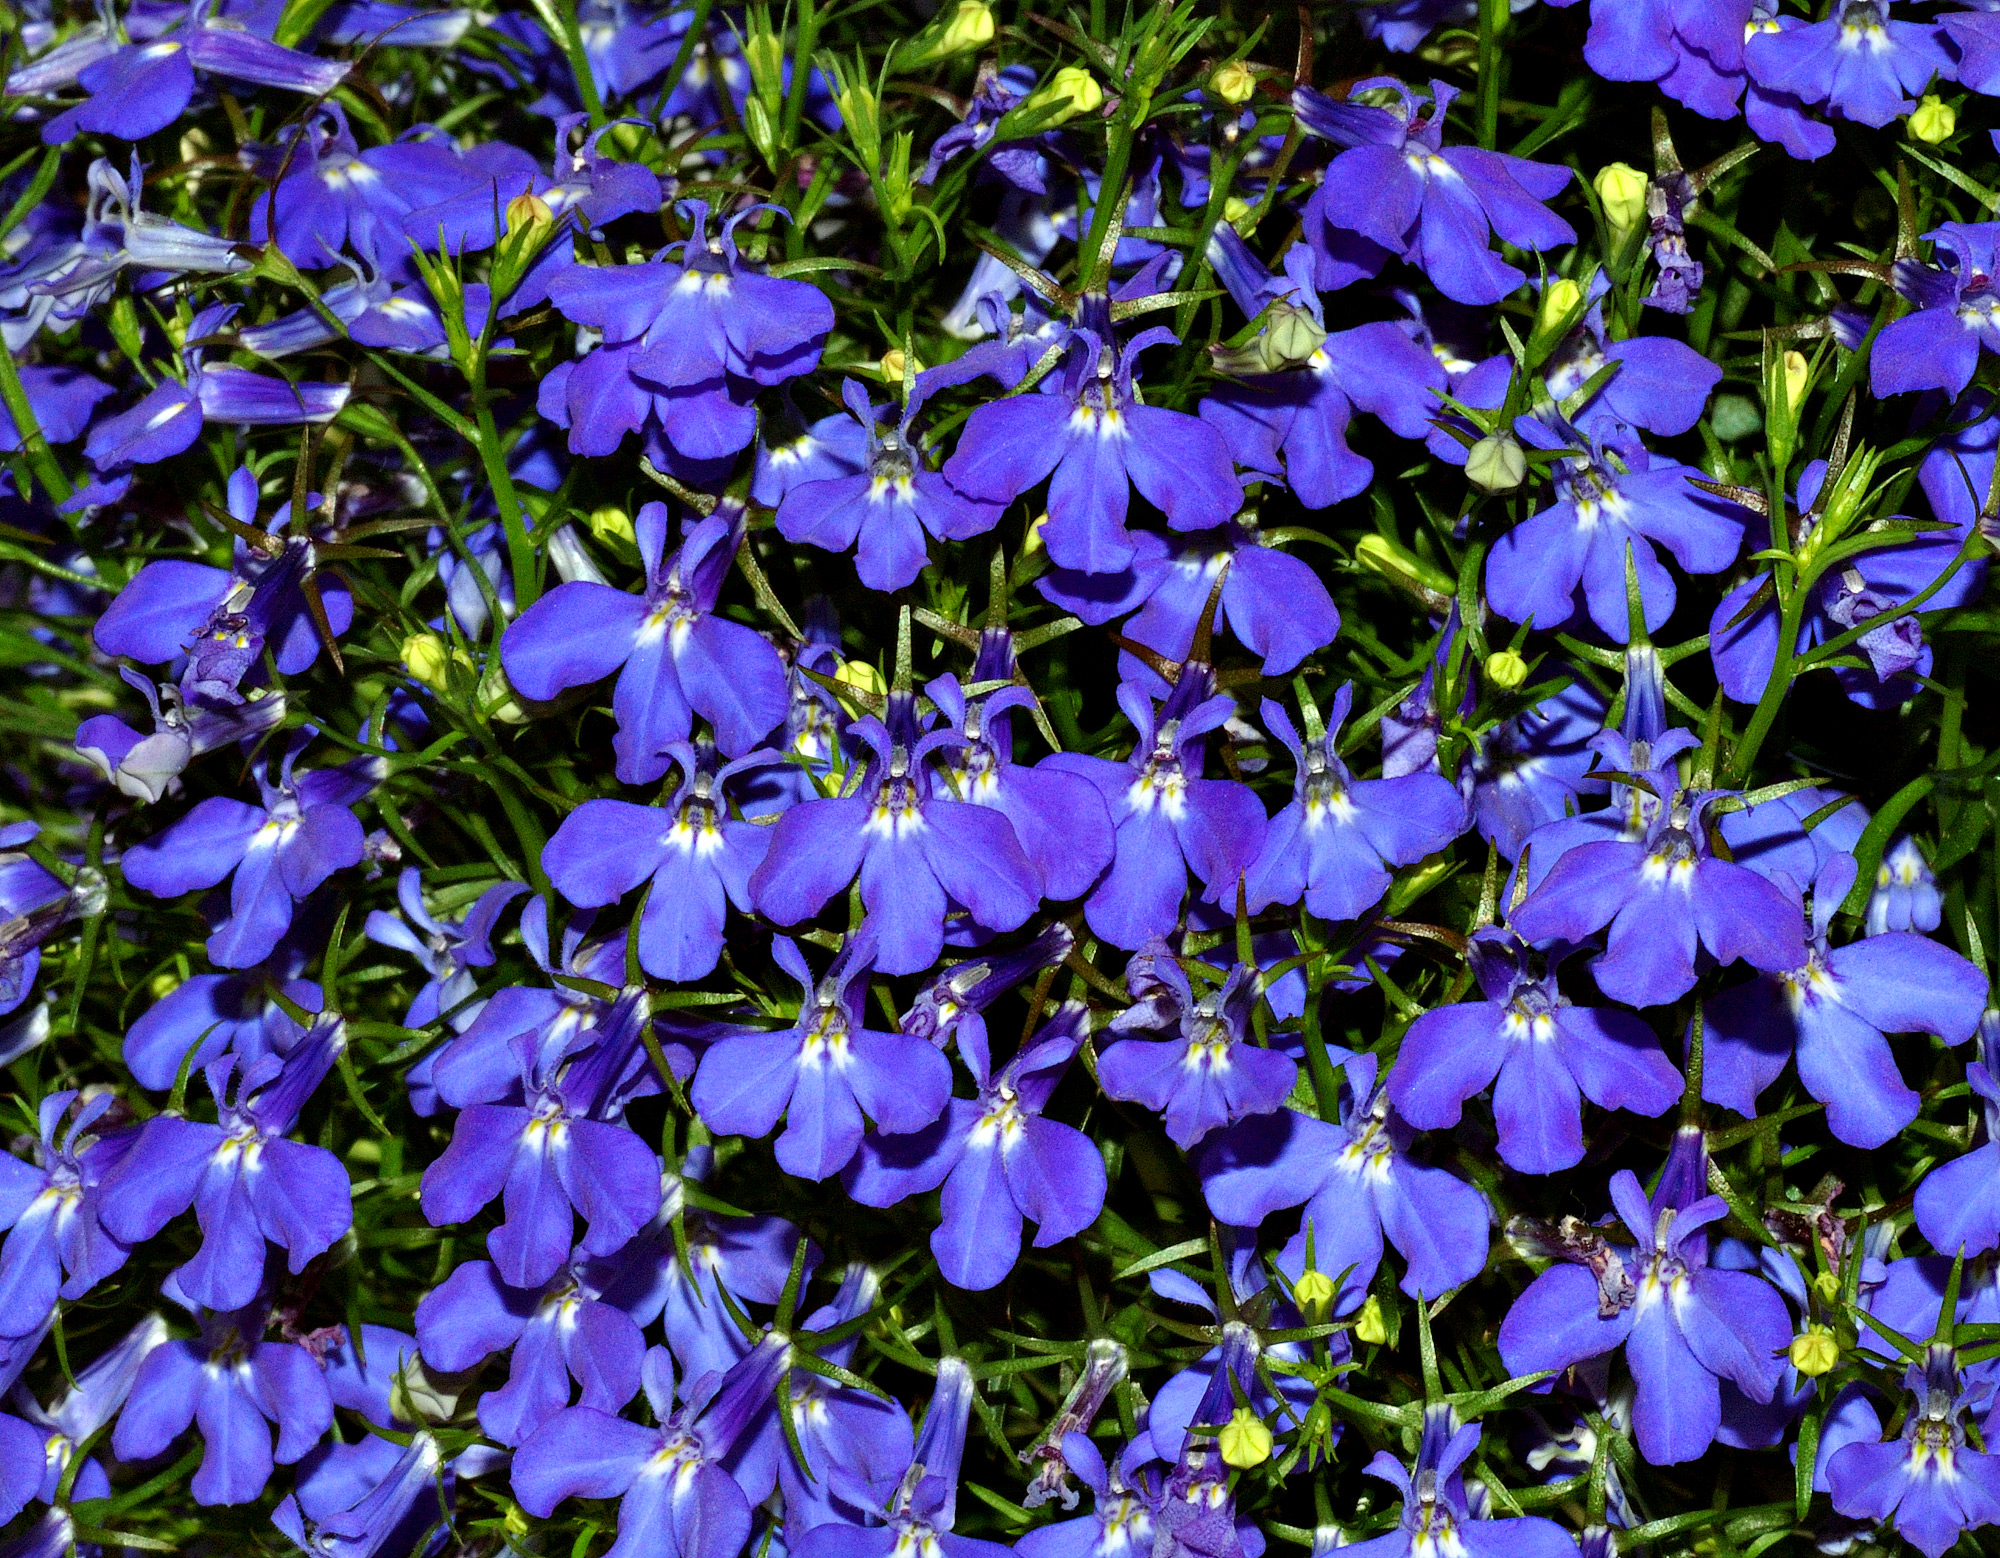 File:Lobelia (aka).jpg - Wikipedia, the free encyclopedia